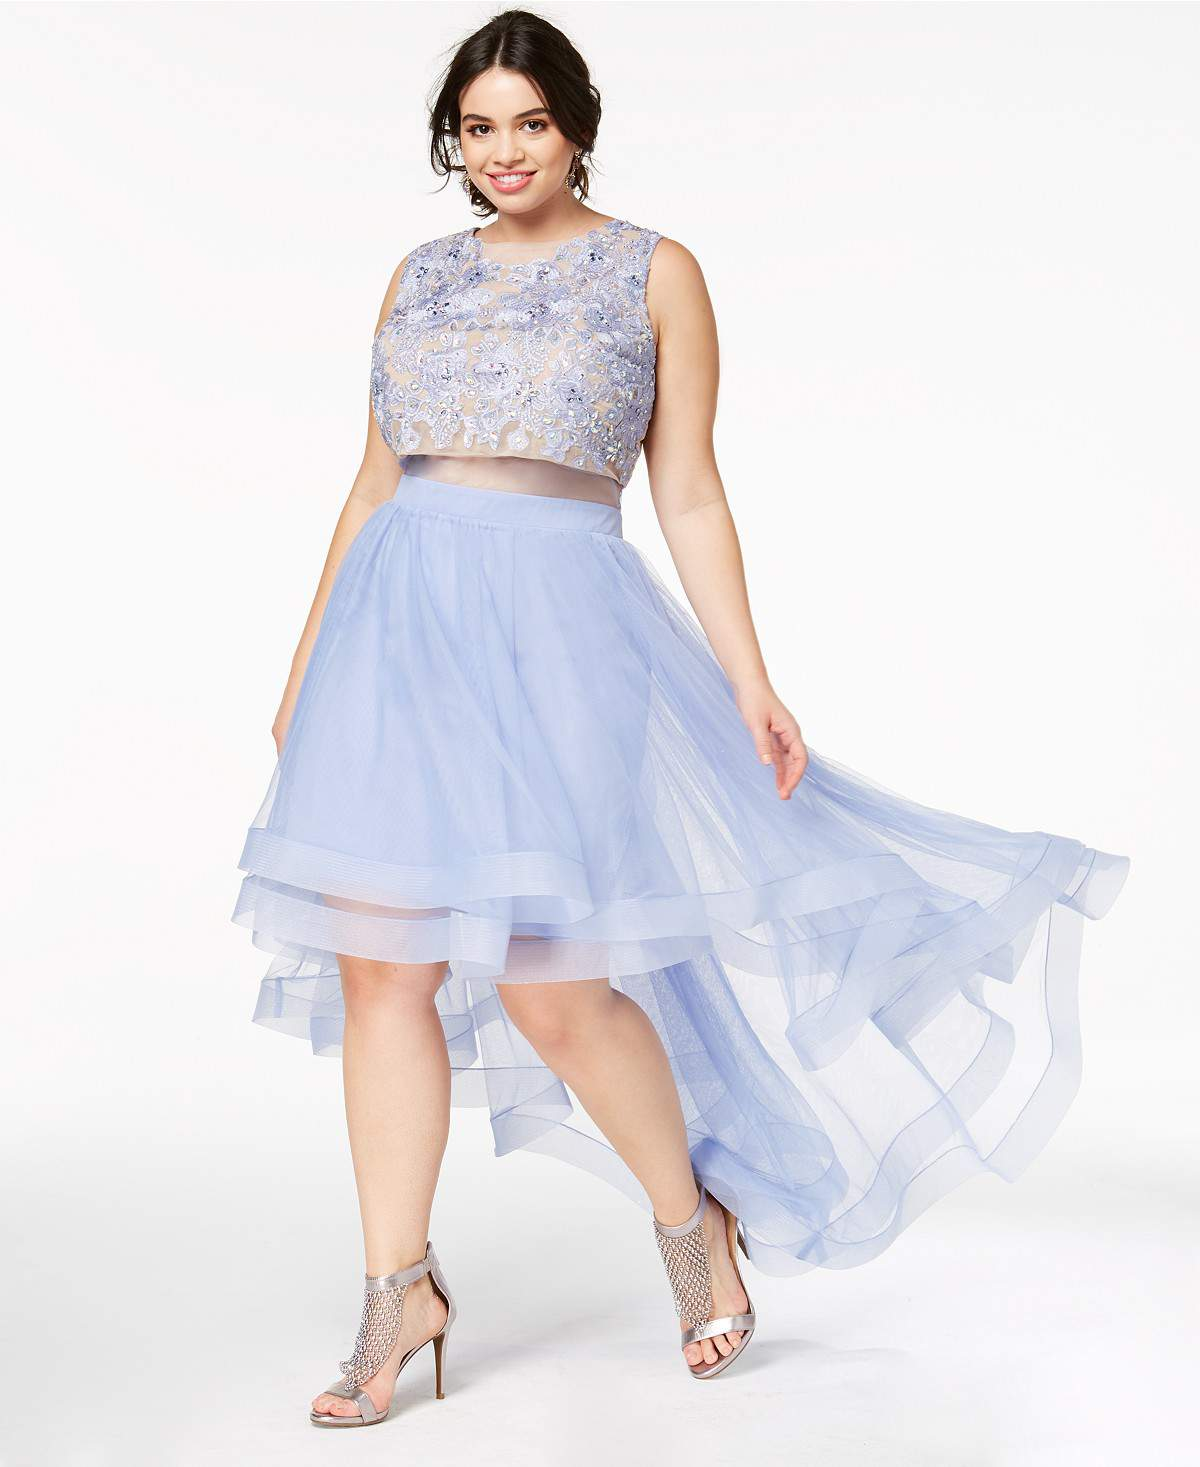 7f8c4f37554 25 Places to Score Plus Size Prom Dresses & Evening Wear